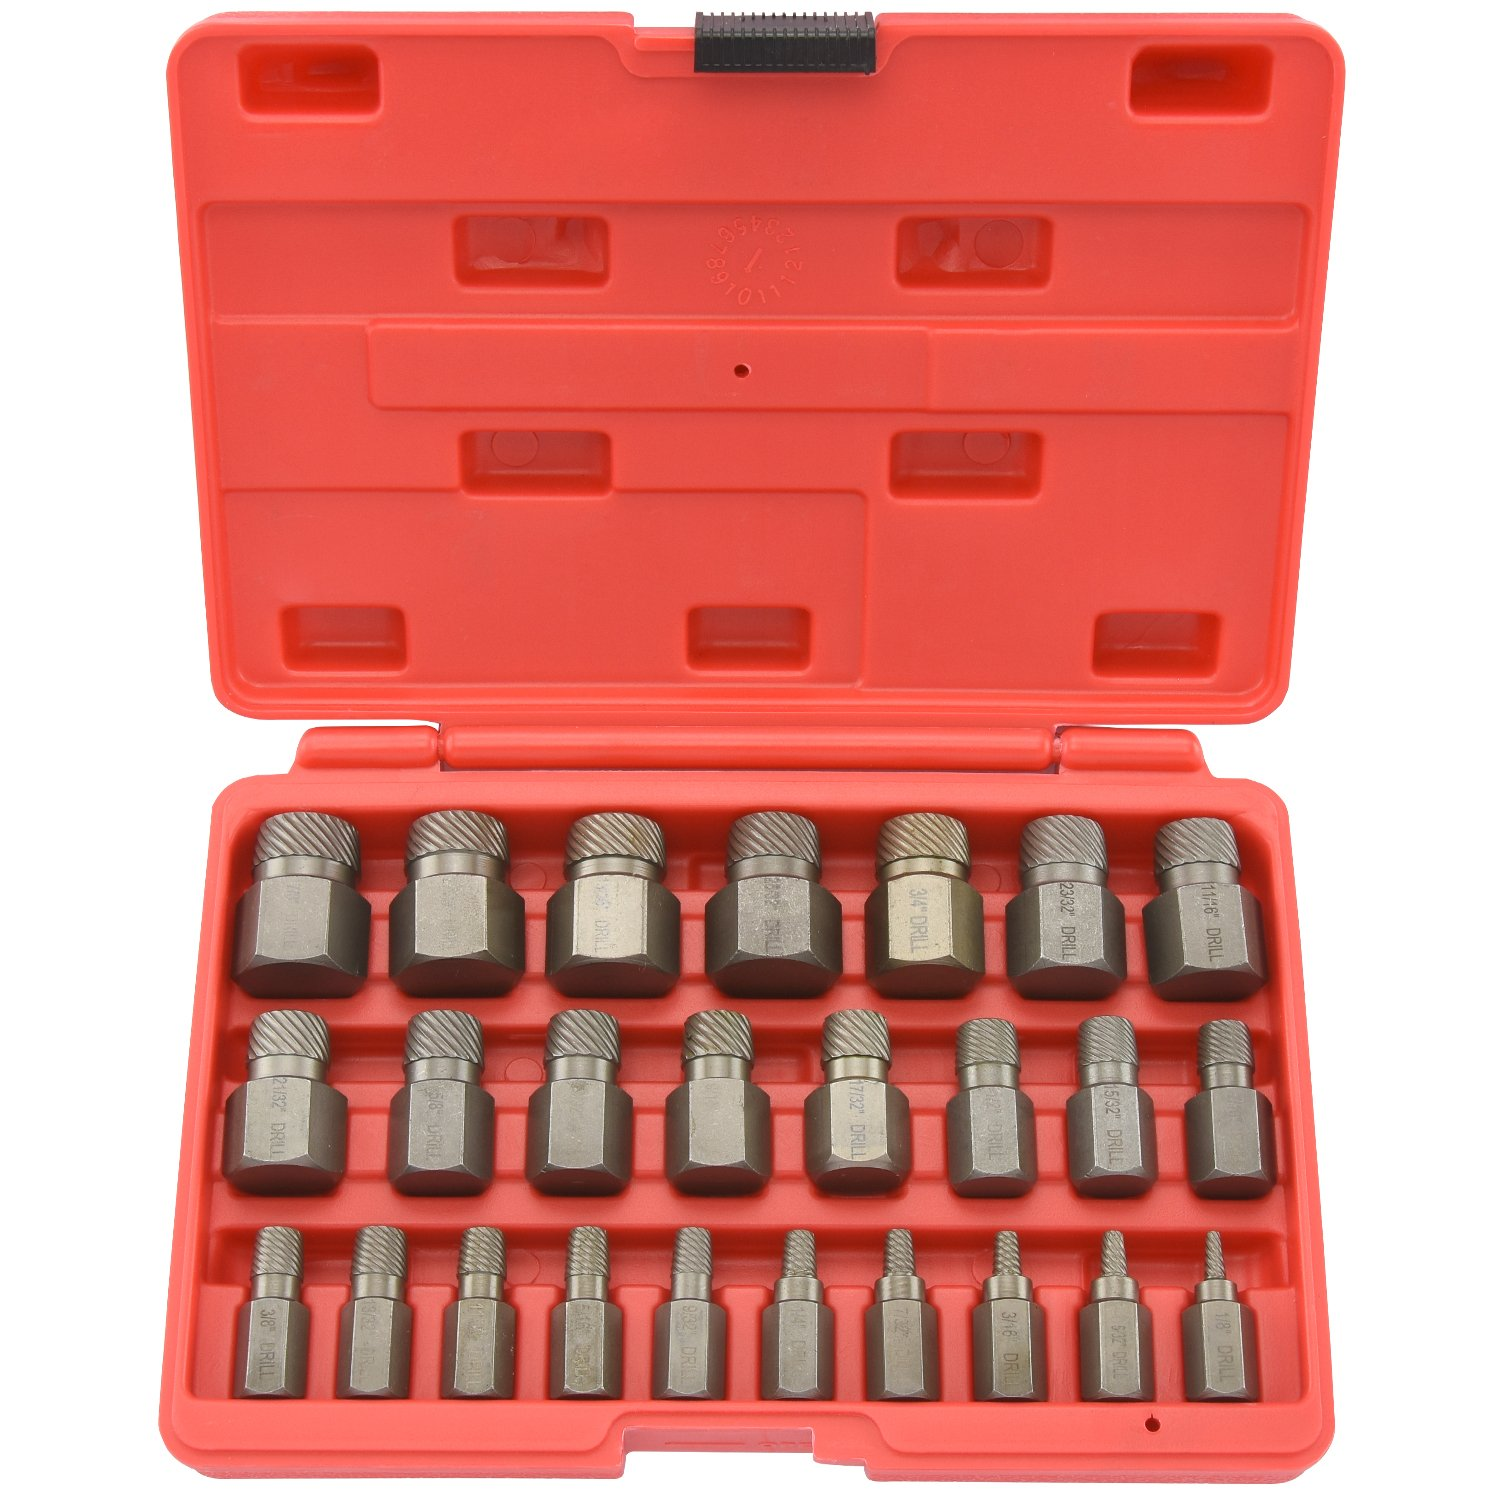 Neiko 04204A Hex Head Multi-Spline Screw and Bolt Extractor 25-Piece Set | 1/8'' to 7/8'' by 1/32'' Increment by Neiko